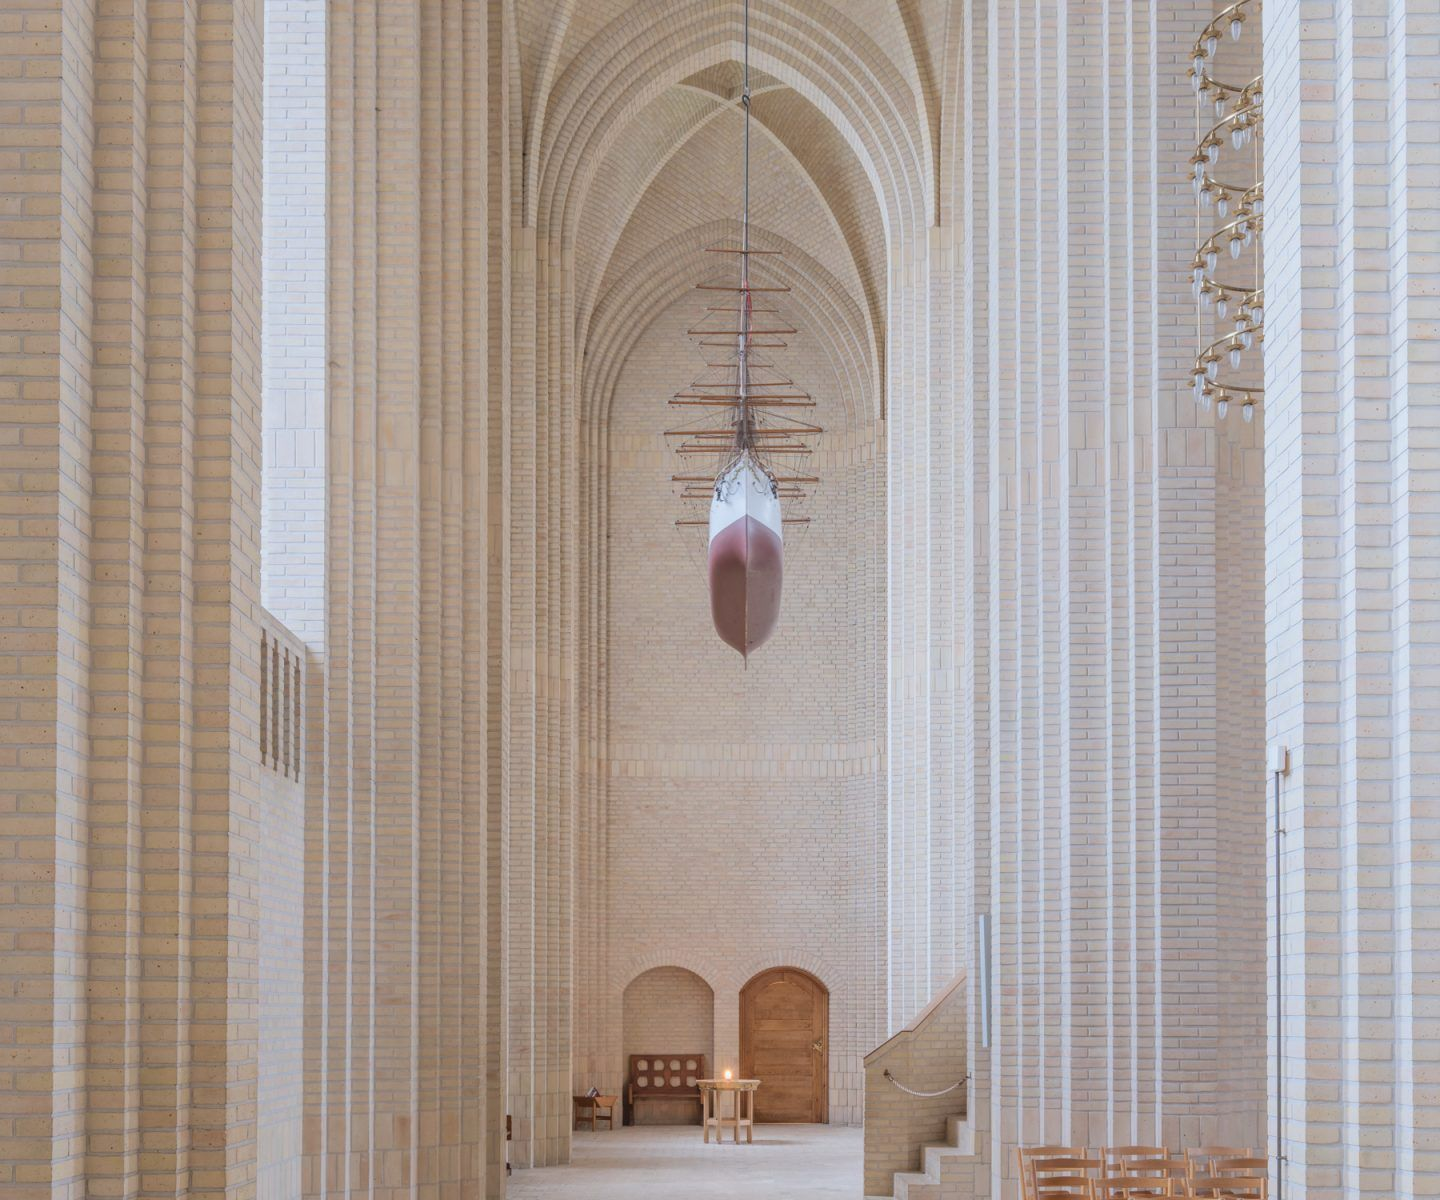 IGNANT-Photography-Ludwig-Favre-Copenhagen-Church-03